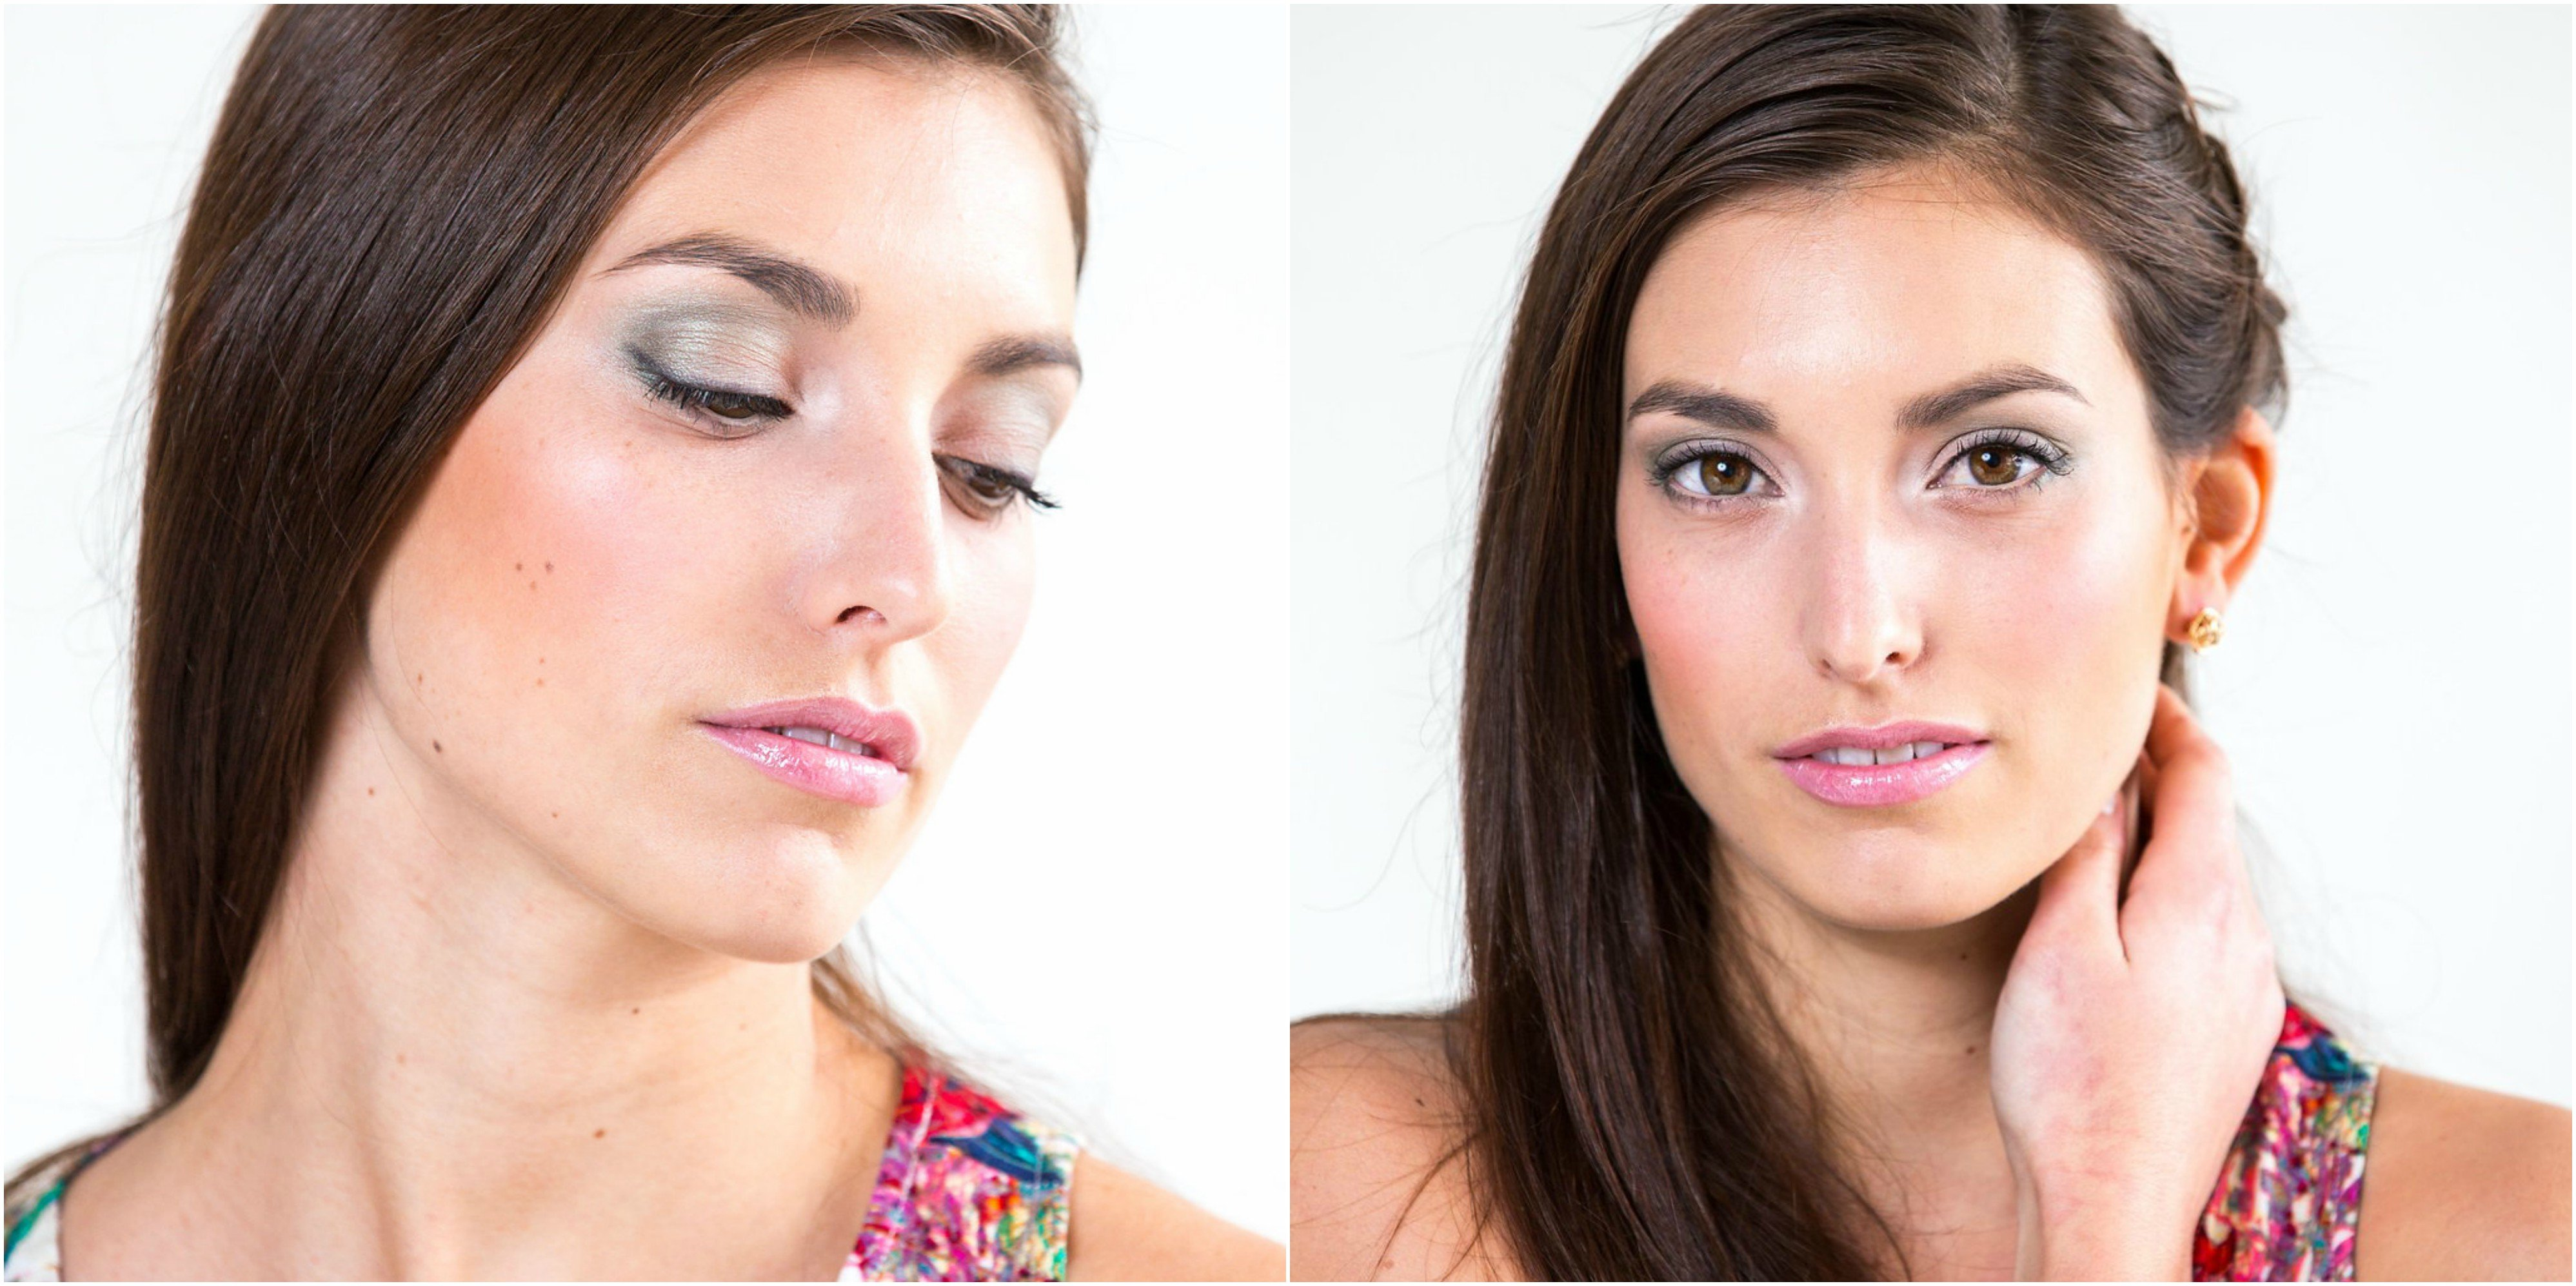 Ottawa makeup artist Klava Z created a clean and fresh pretty pink pastel makeup look with pink lips and pistachio eyeshadows inspired by spring beauty trends.